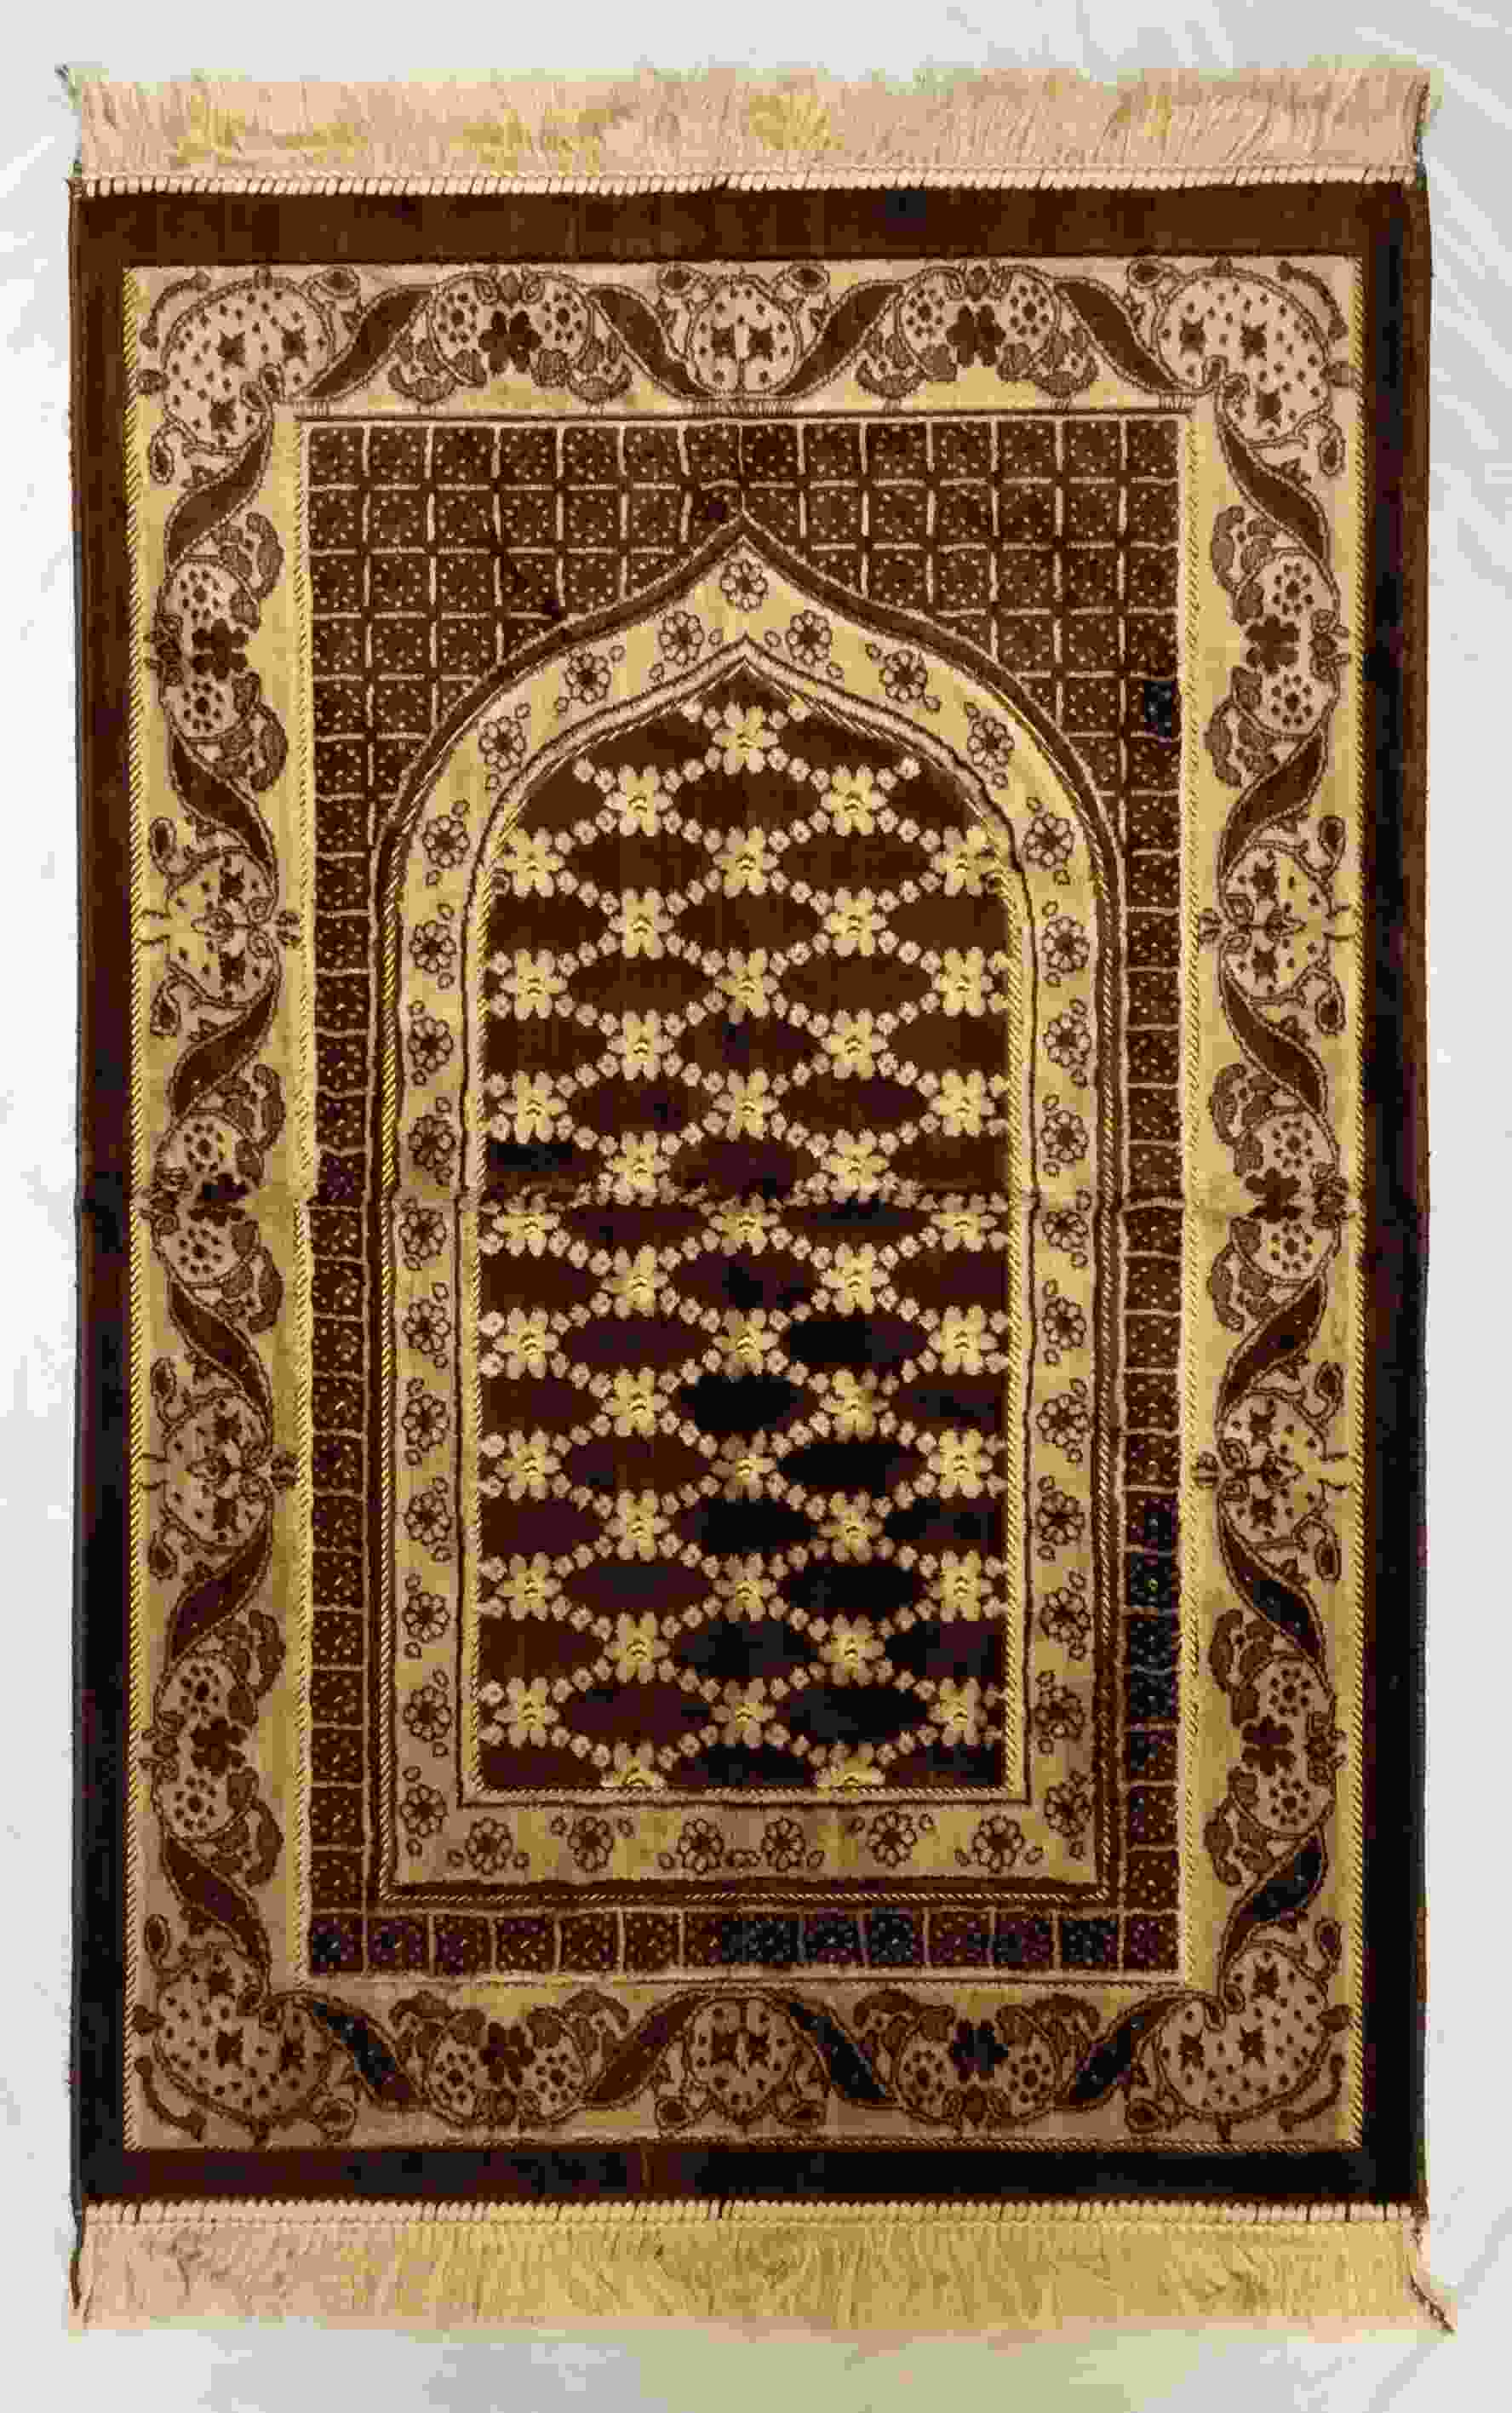 Safi Prayer Rugs - Design SA-D1 - Design Spiegel - Design Plush